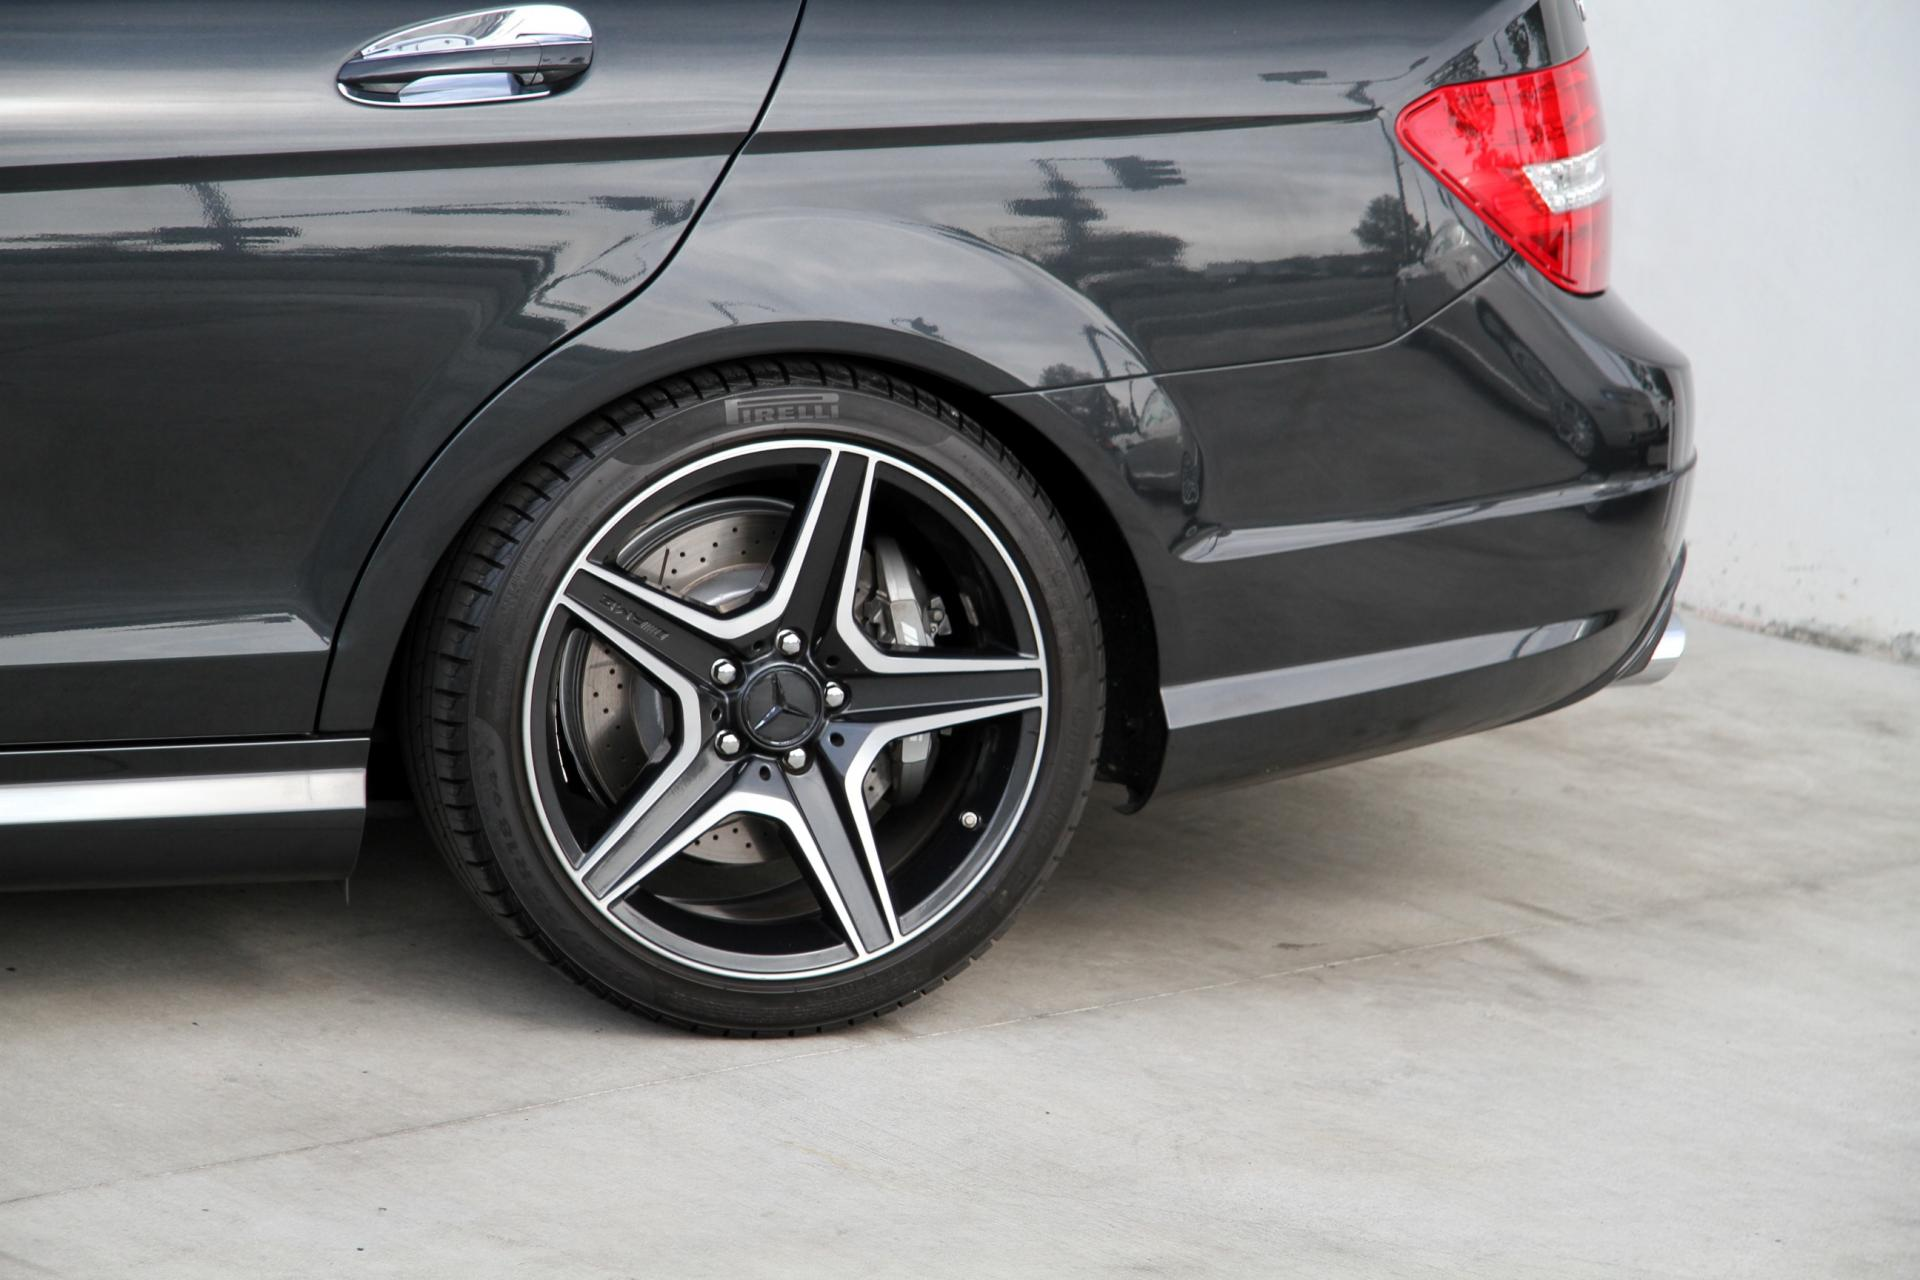 2012 mercedes benz c 63 amg stock 5888a for sale near for Used mercedes benz near me